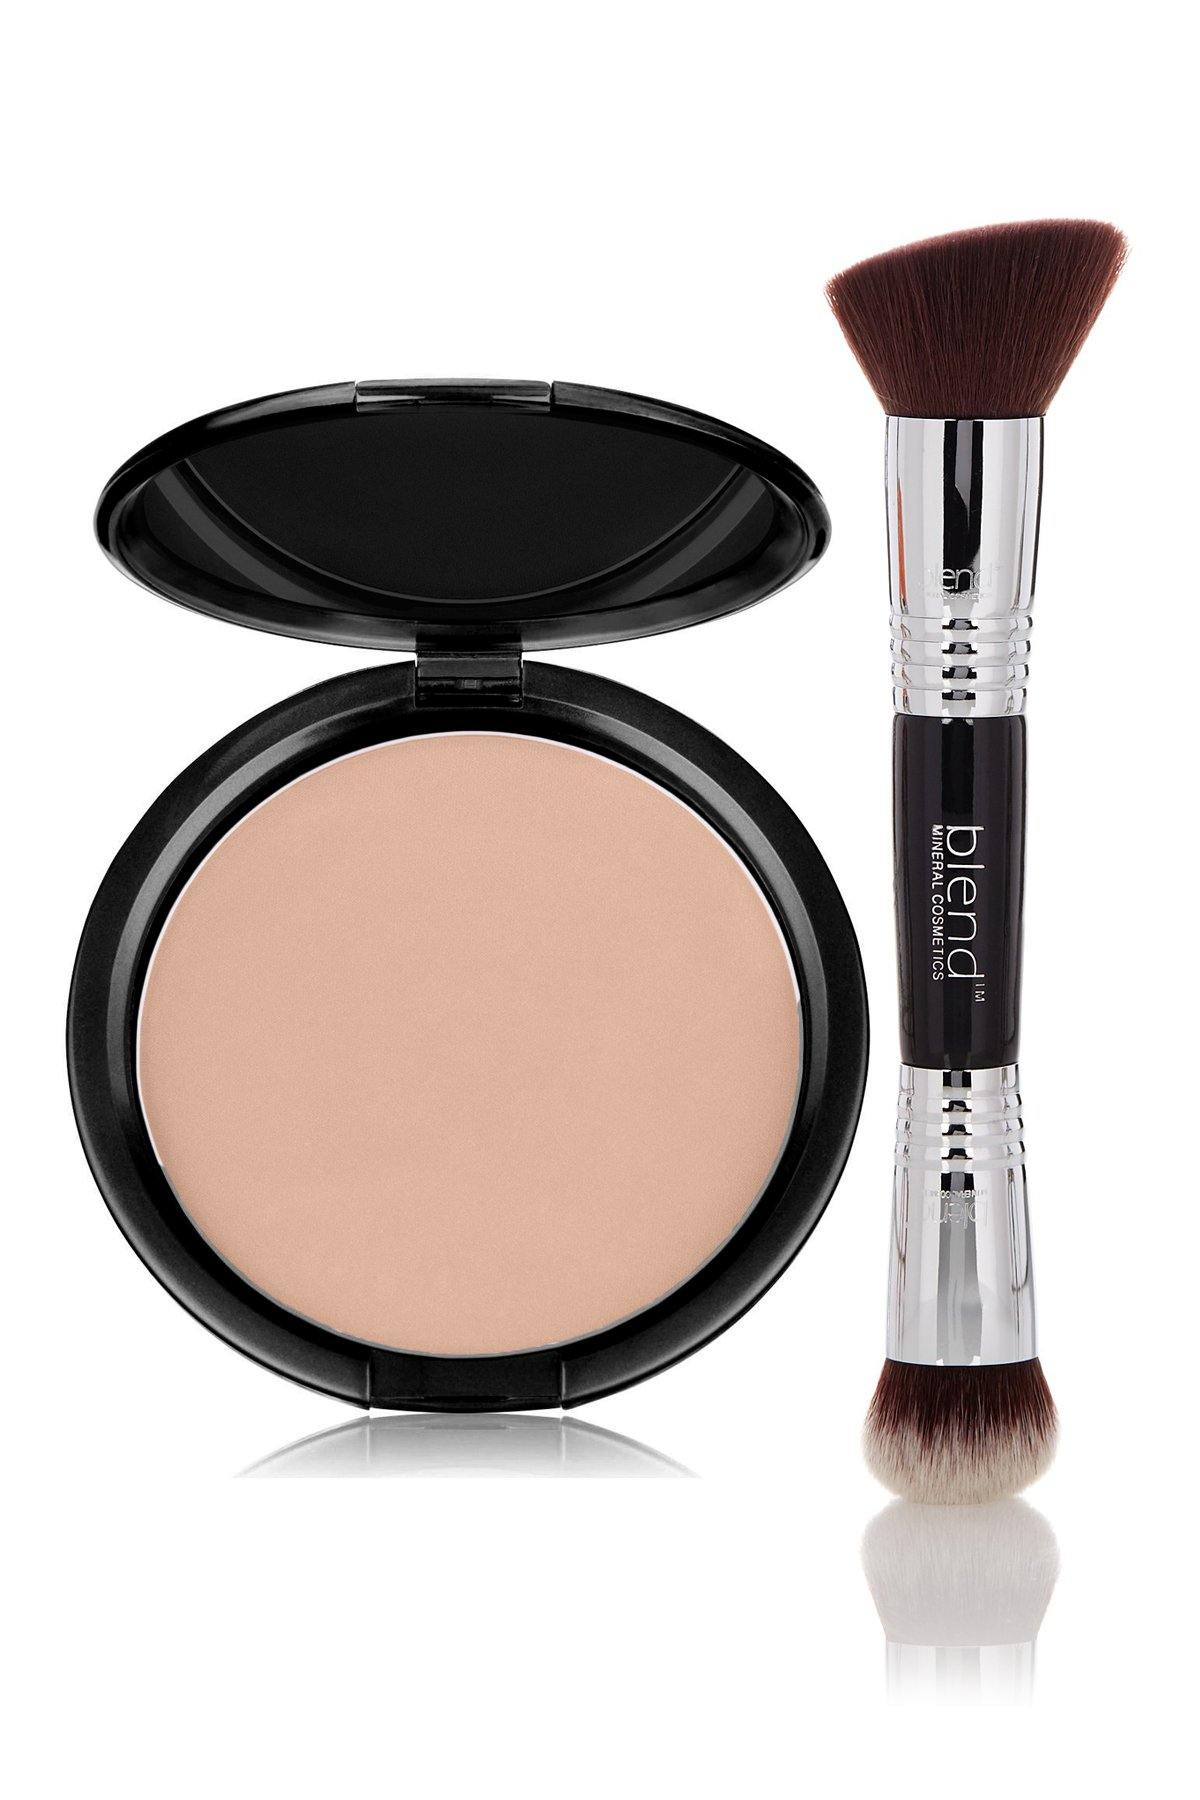 Foundation Pink Tone Light Mineral Pressed Powder & Brush